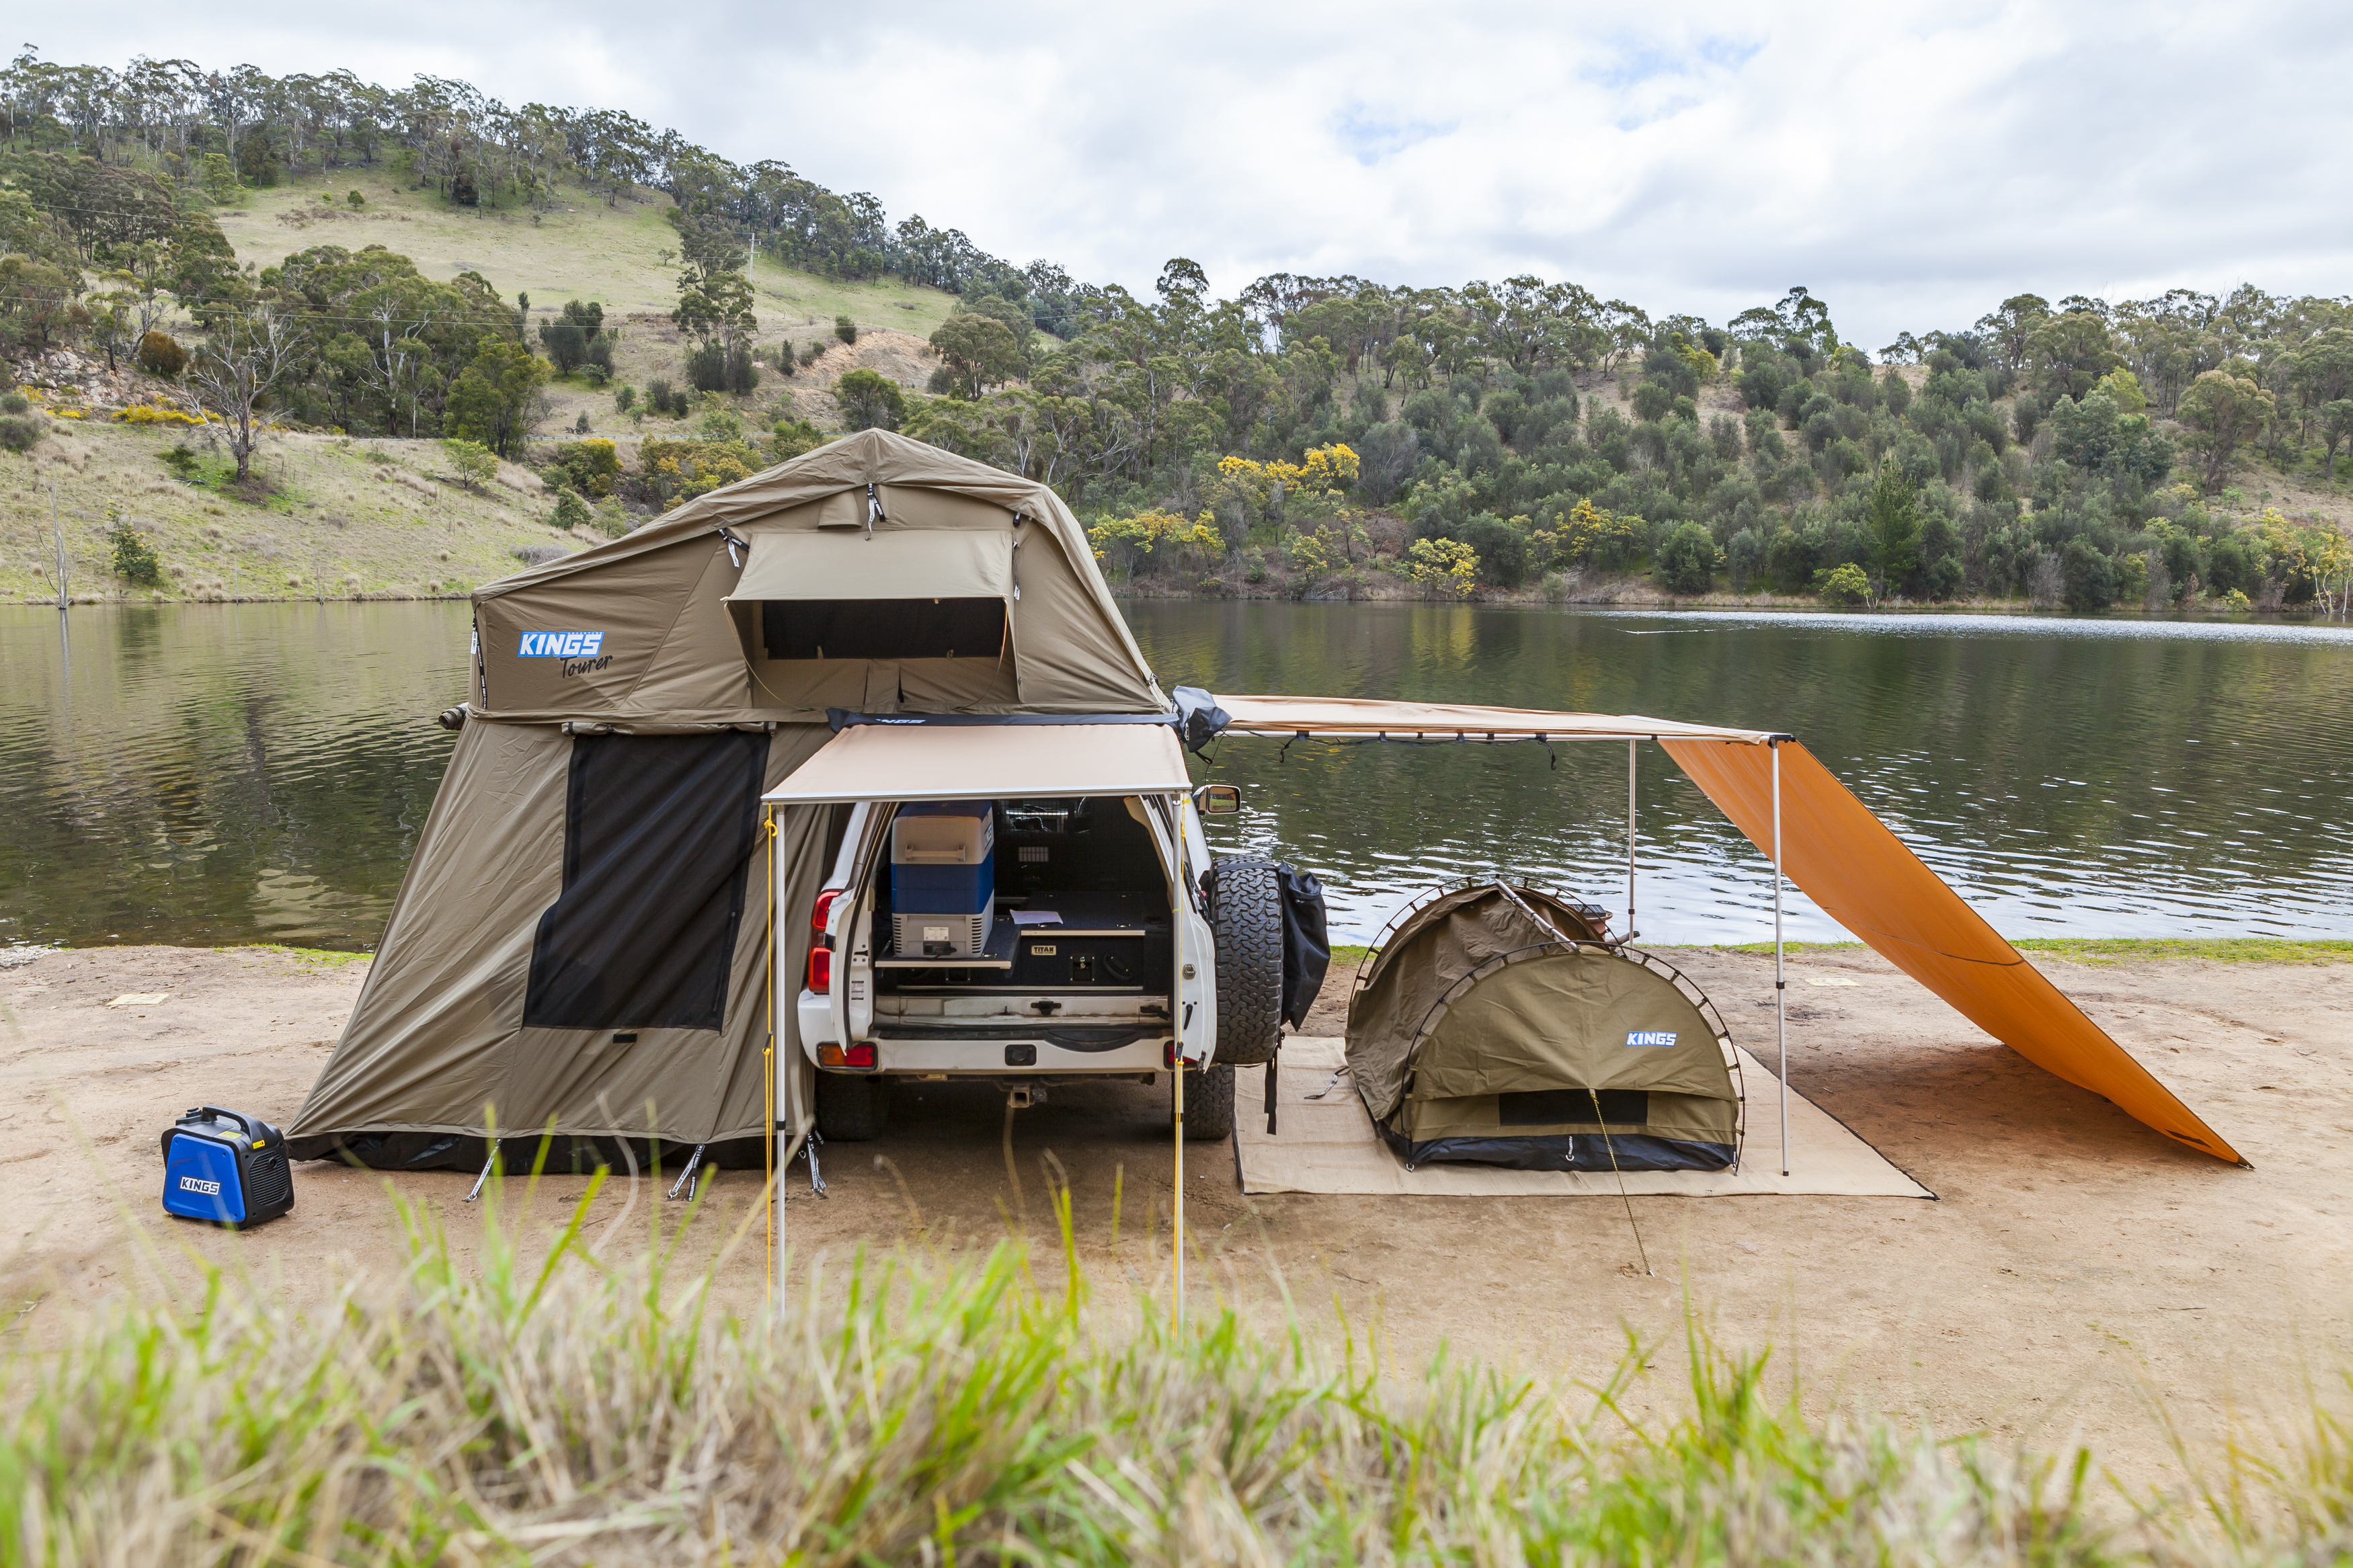 A Roof Top Tents have changed the way Aussies camp! - image 160929-Lake-Lyell-4-of-32 on https://www.4wdsupacentre.com.au/news